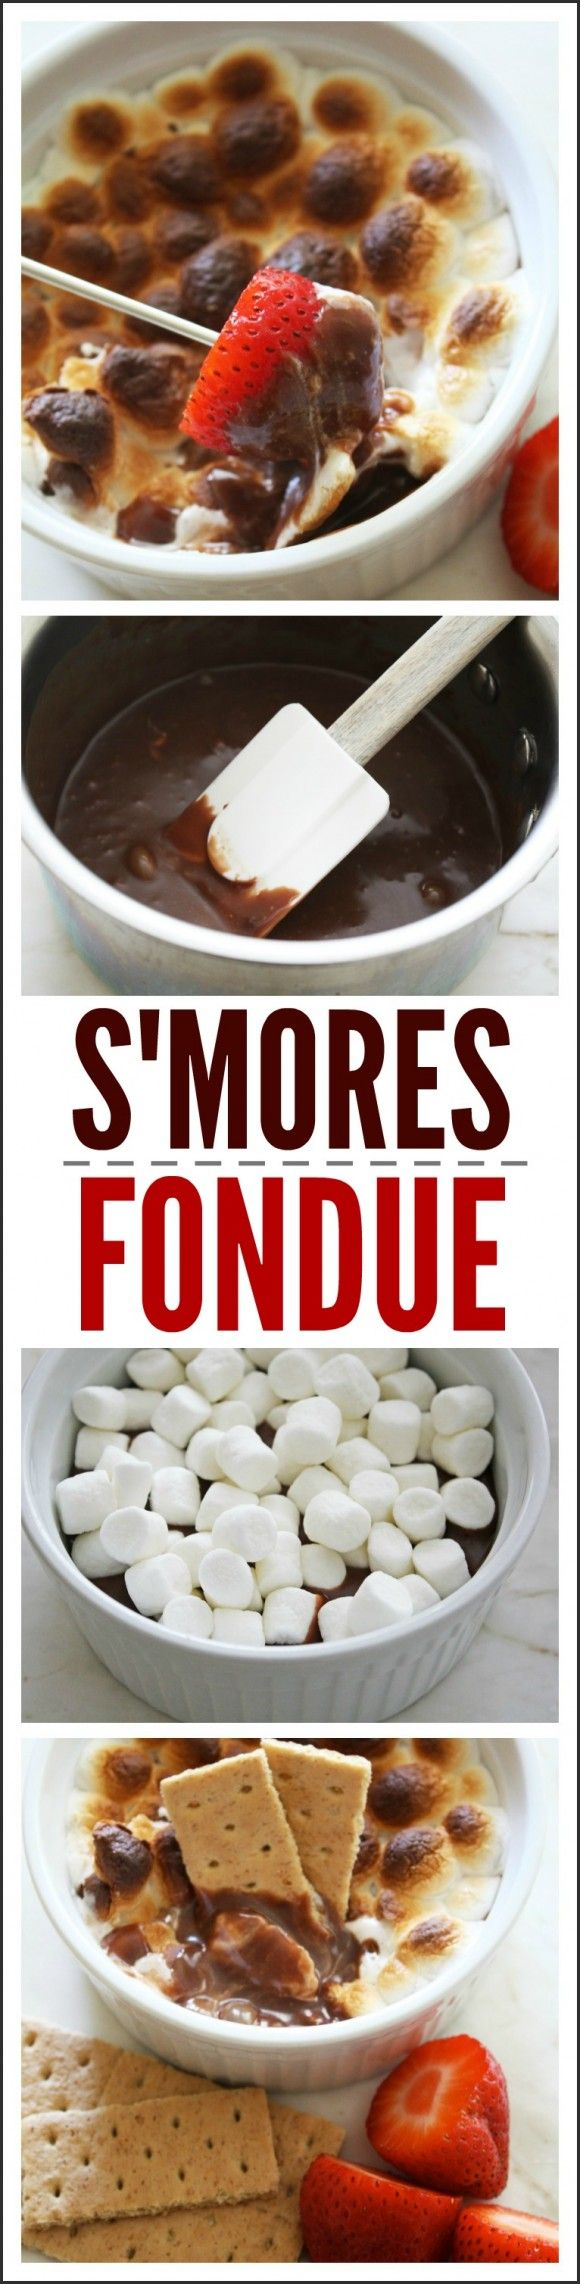 Made with semi sweet chocolate and white chocolate chips, your family will love this s'mores fondue recipe! It's a great dessert to serve at a winter party. Don't the marshmallows look divine?  | CatchMyParty.com